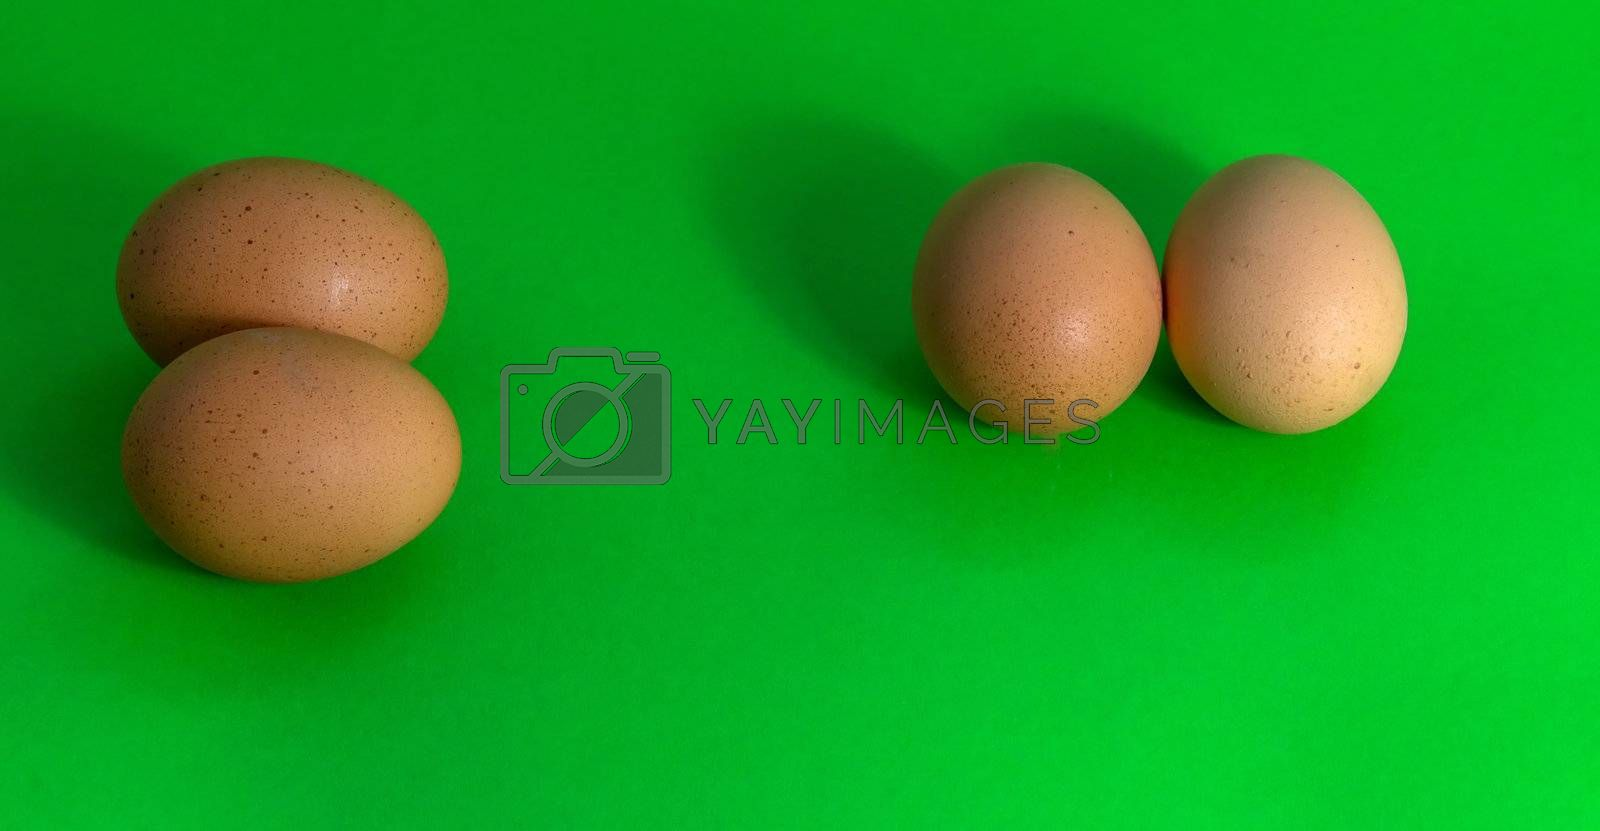 Abstract picture of Easter, two groups with two eggs on a uniformly green background, concept